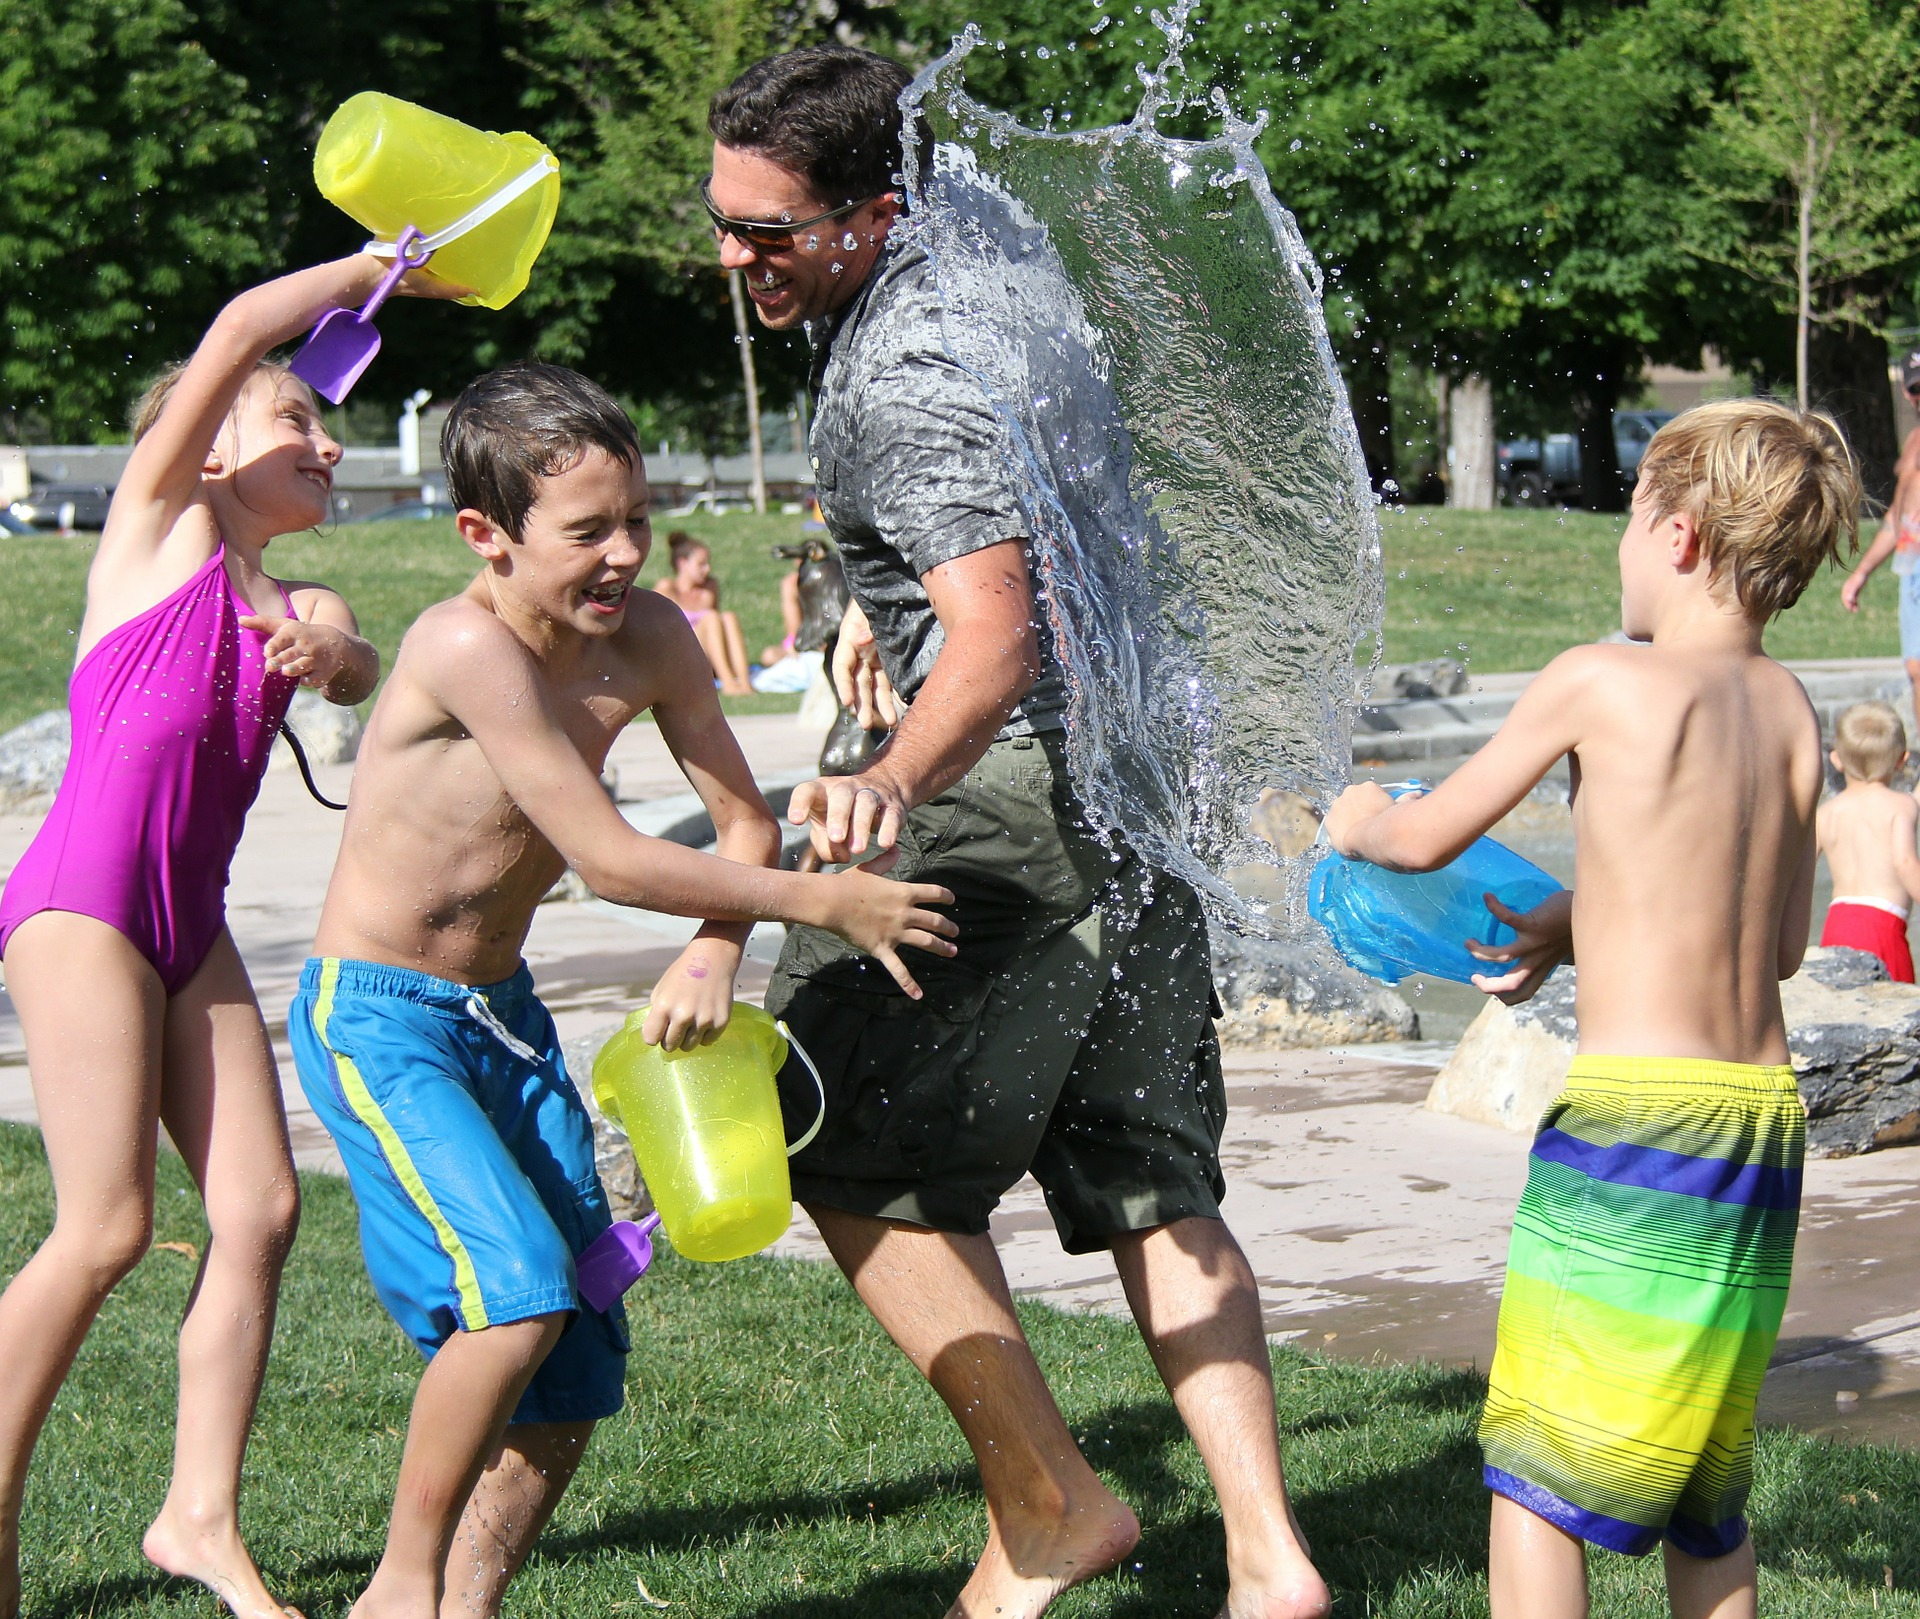 water-fight-442257_1920 (1)